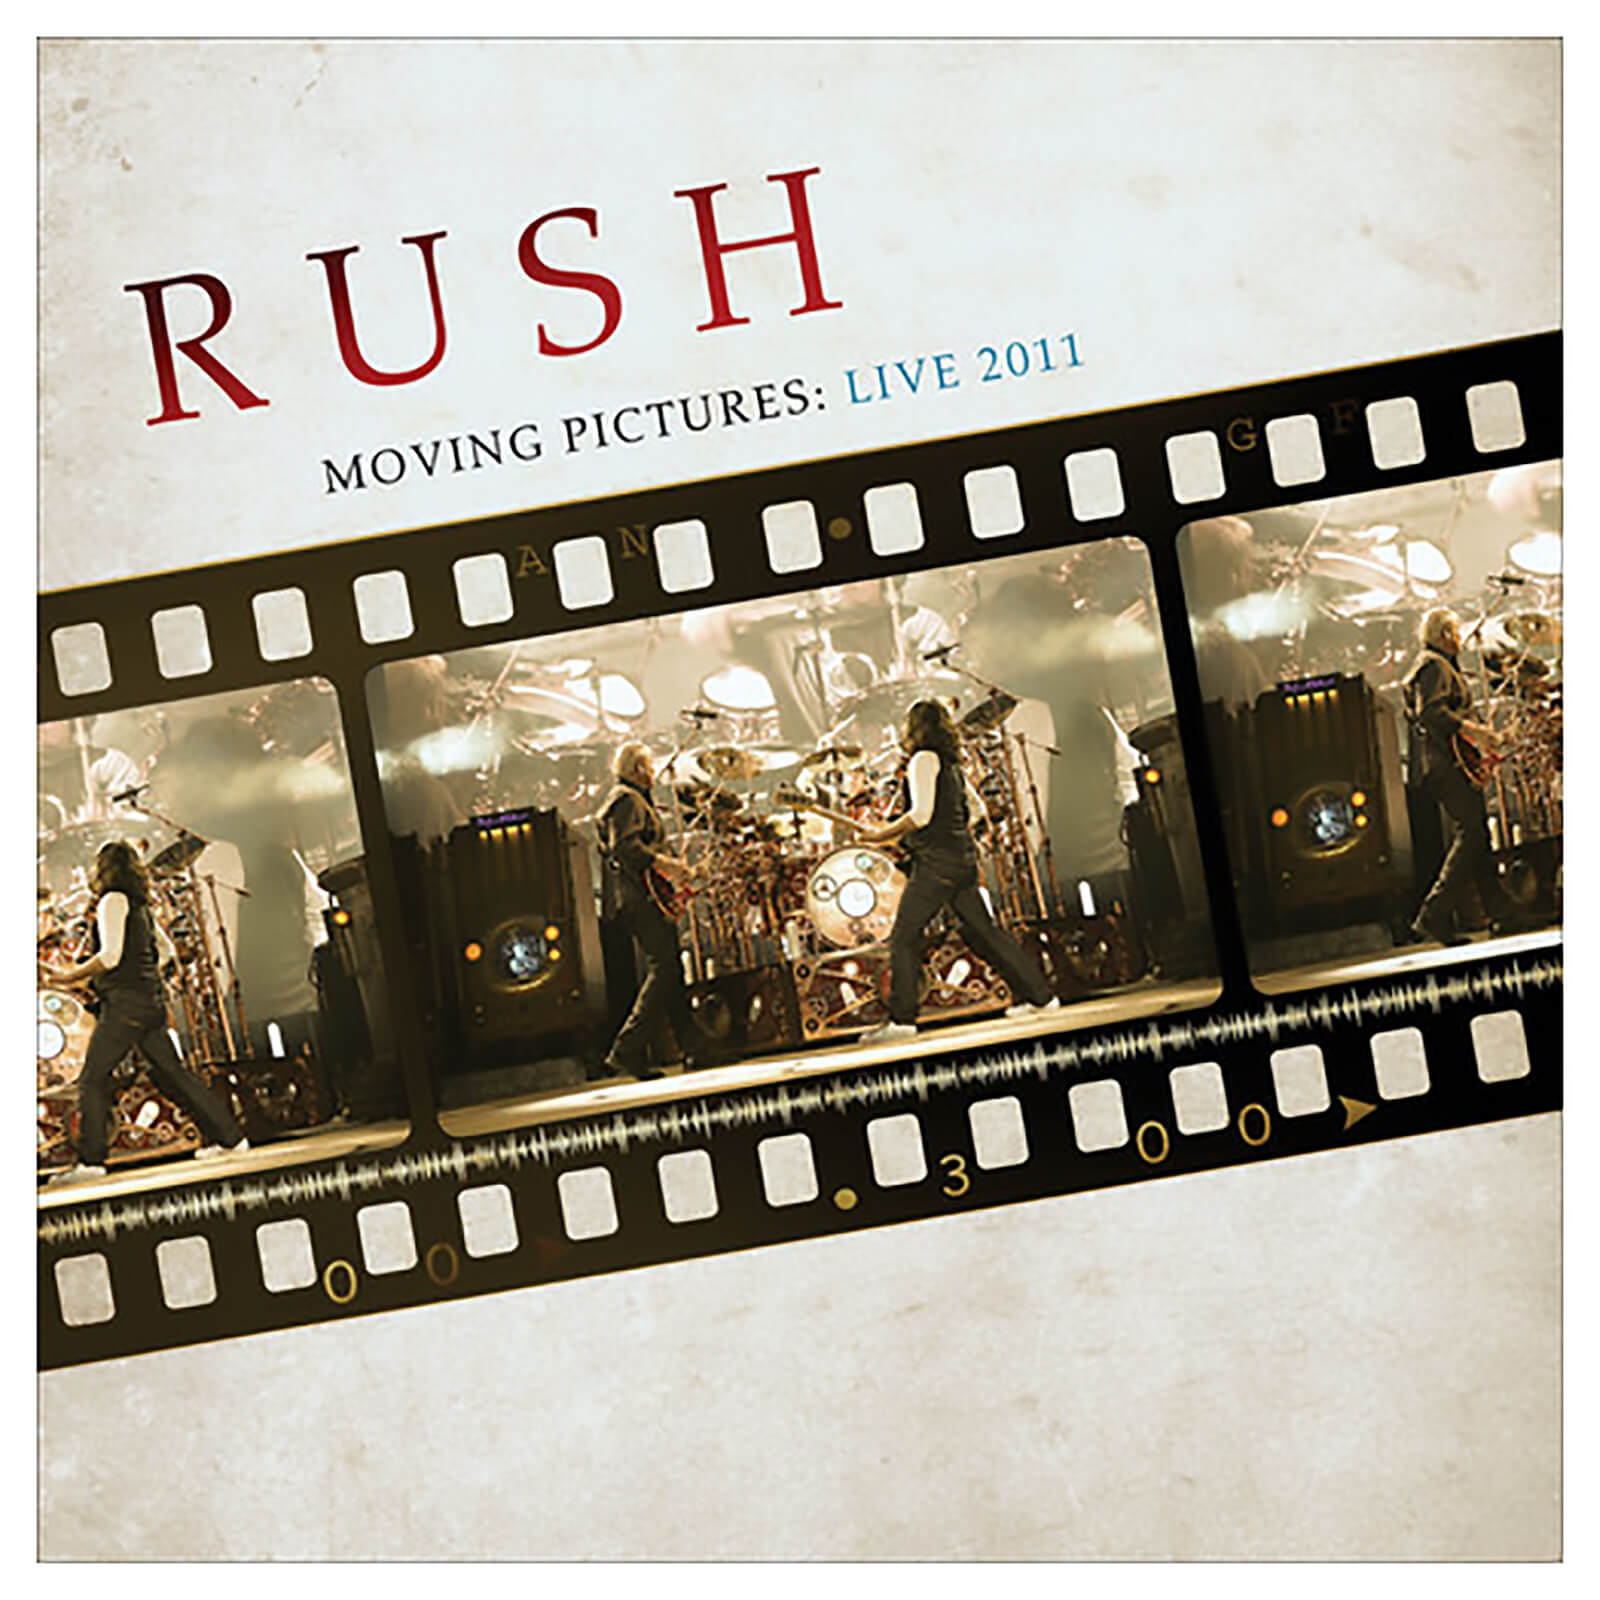 Rush - Moving Pictures: Live 2011 - Vinyl